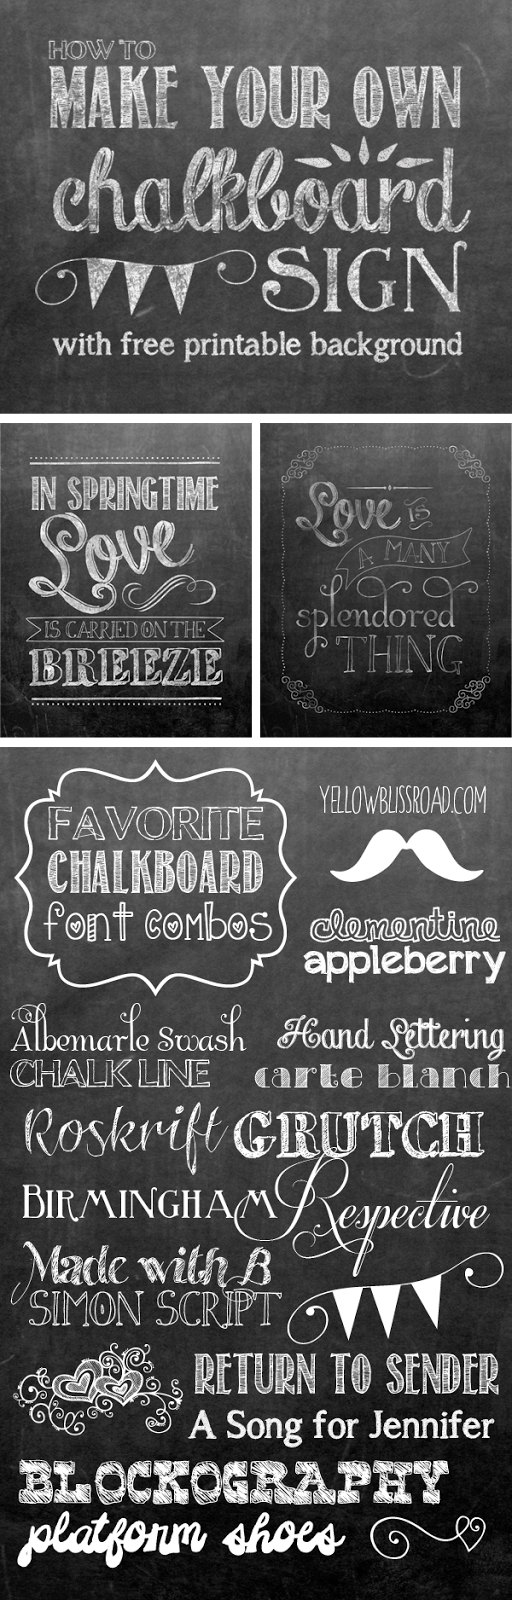 photo about Free Chalkboard Printable named How toward Deliver Your Private Printable Chalkboard Indication - Yellow